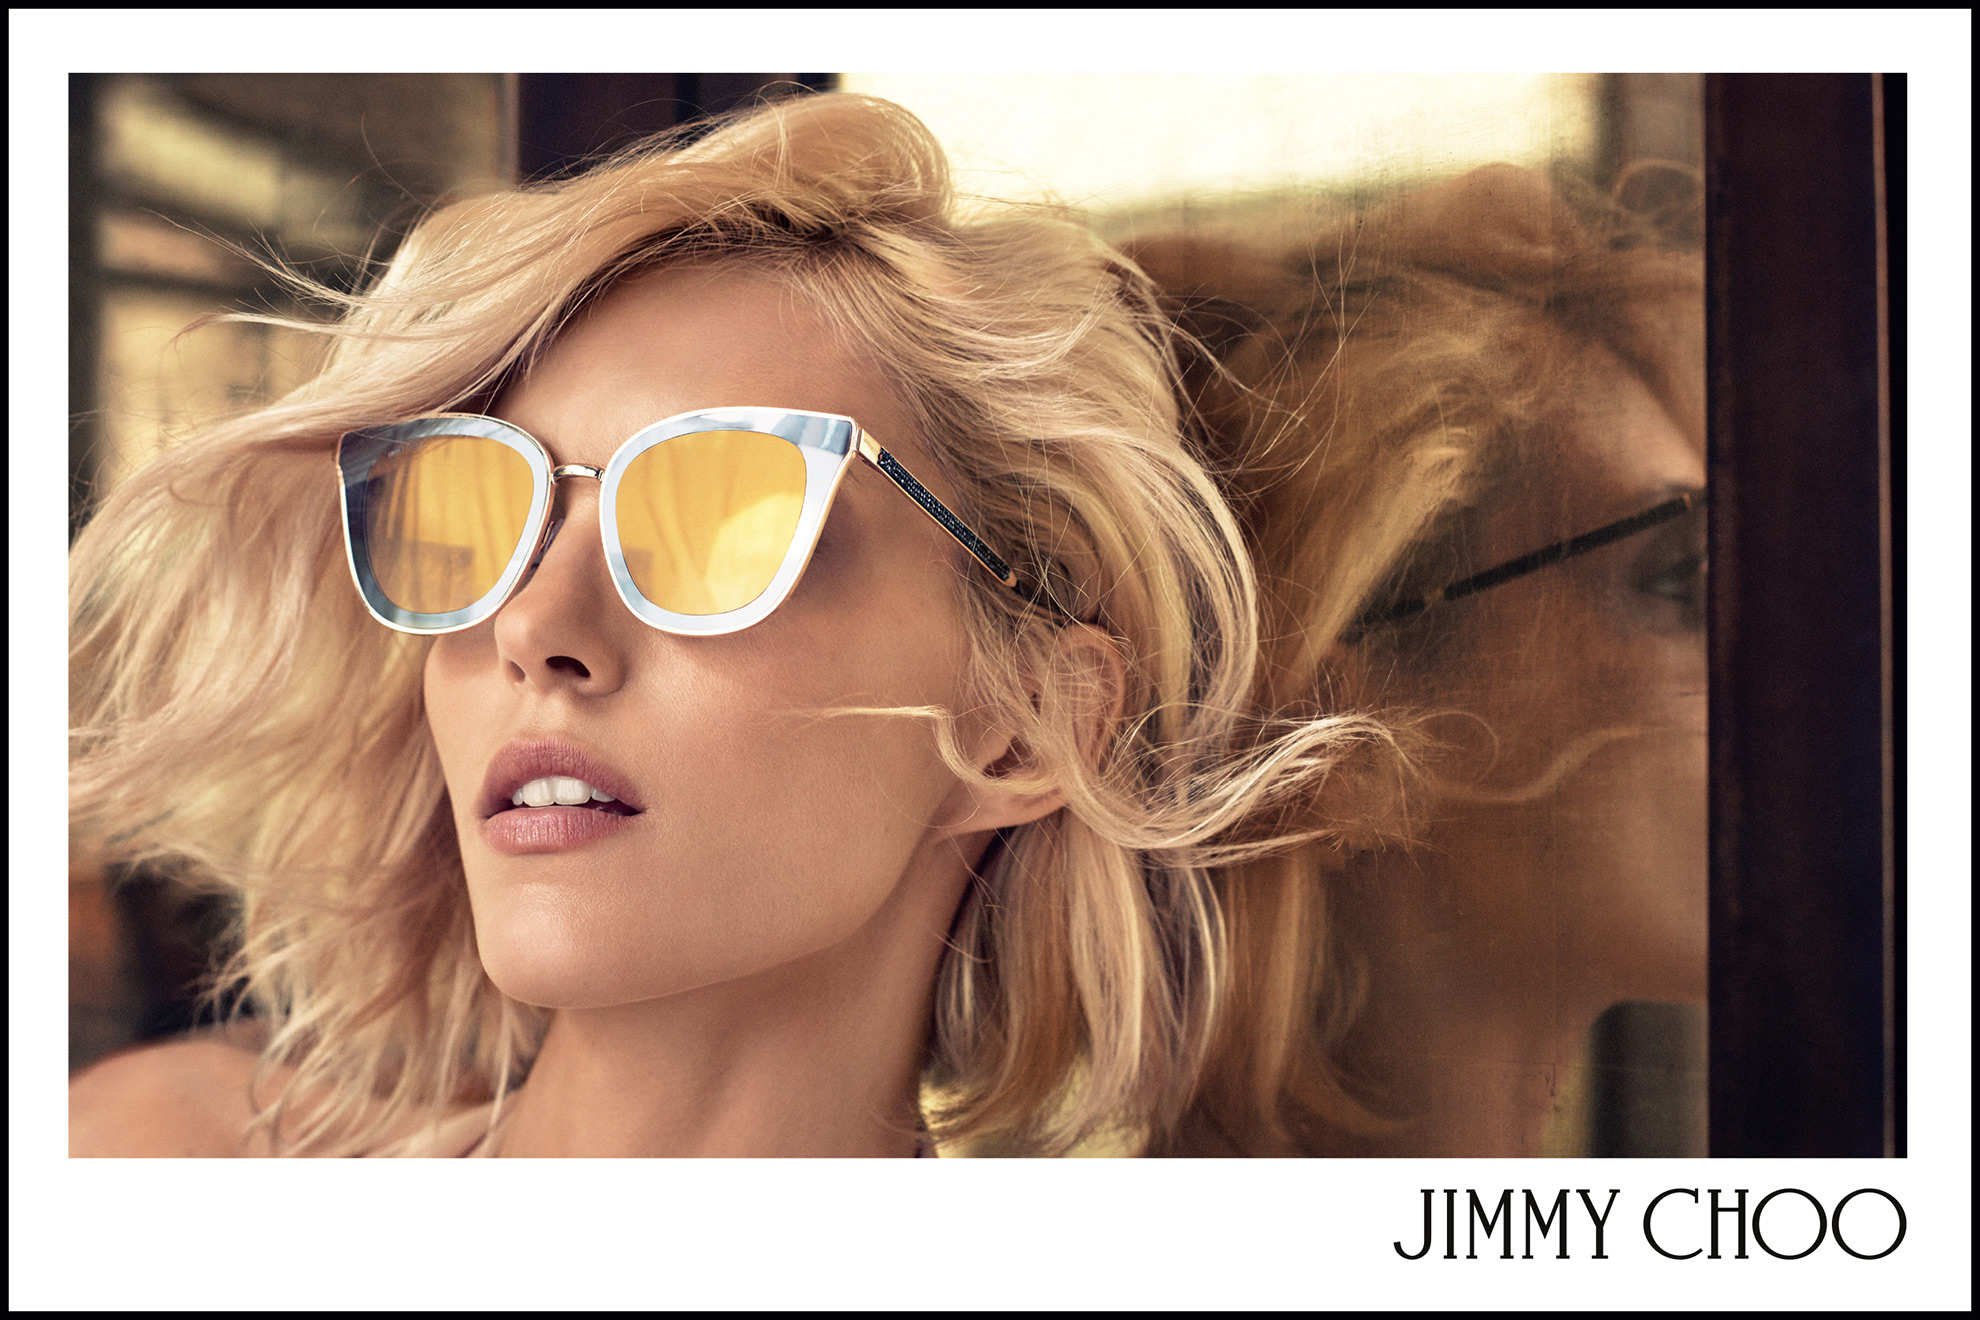 Jimmy Choo: A summer of sparkles and glam - Jimmy Choo Editor's pick